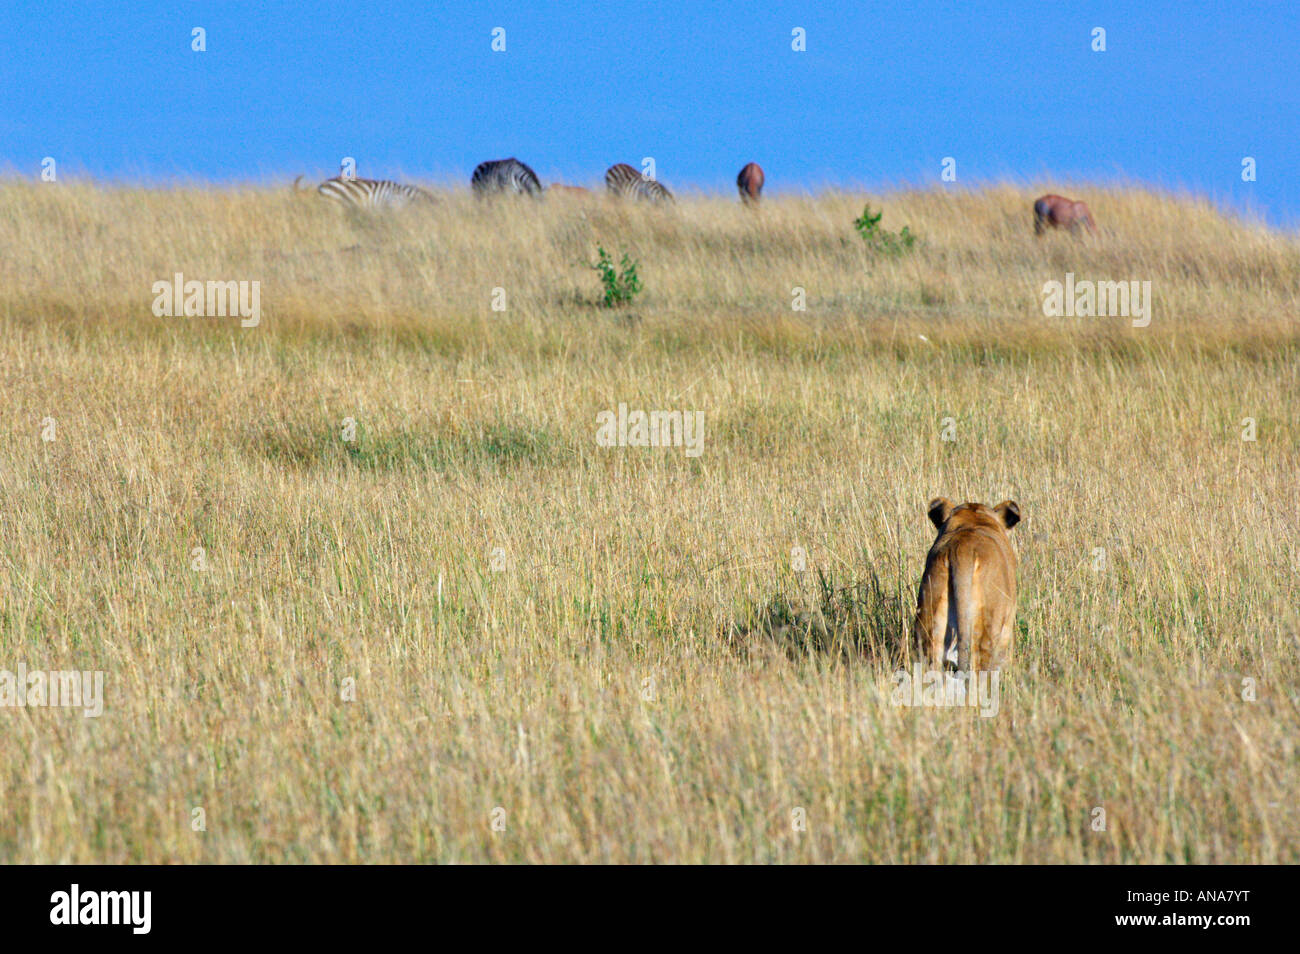 Lion Stalking Zebra Stock Photos & Lion Stalking Zebra ...